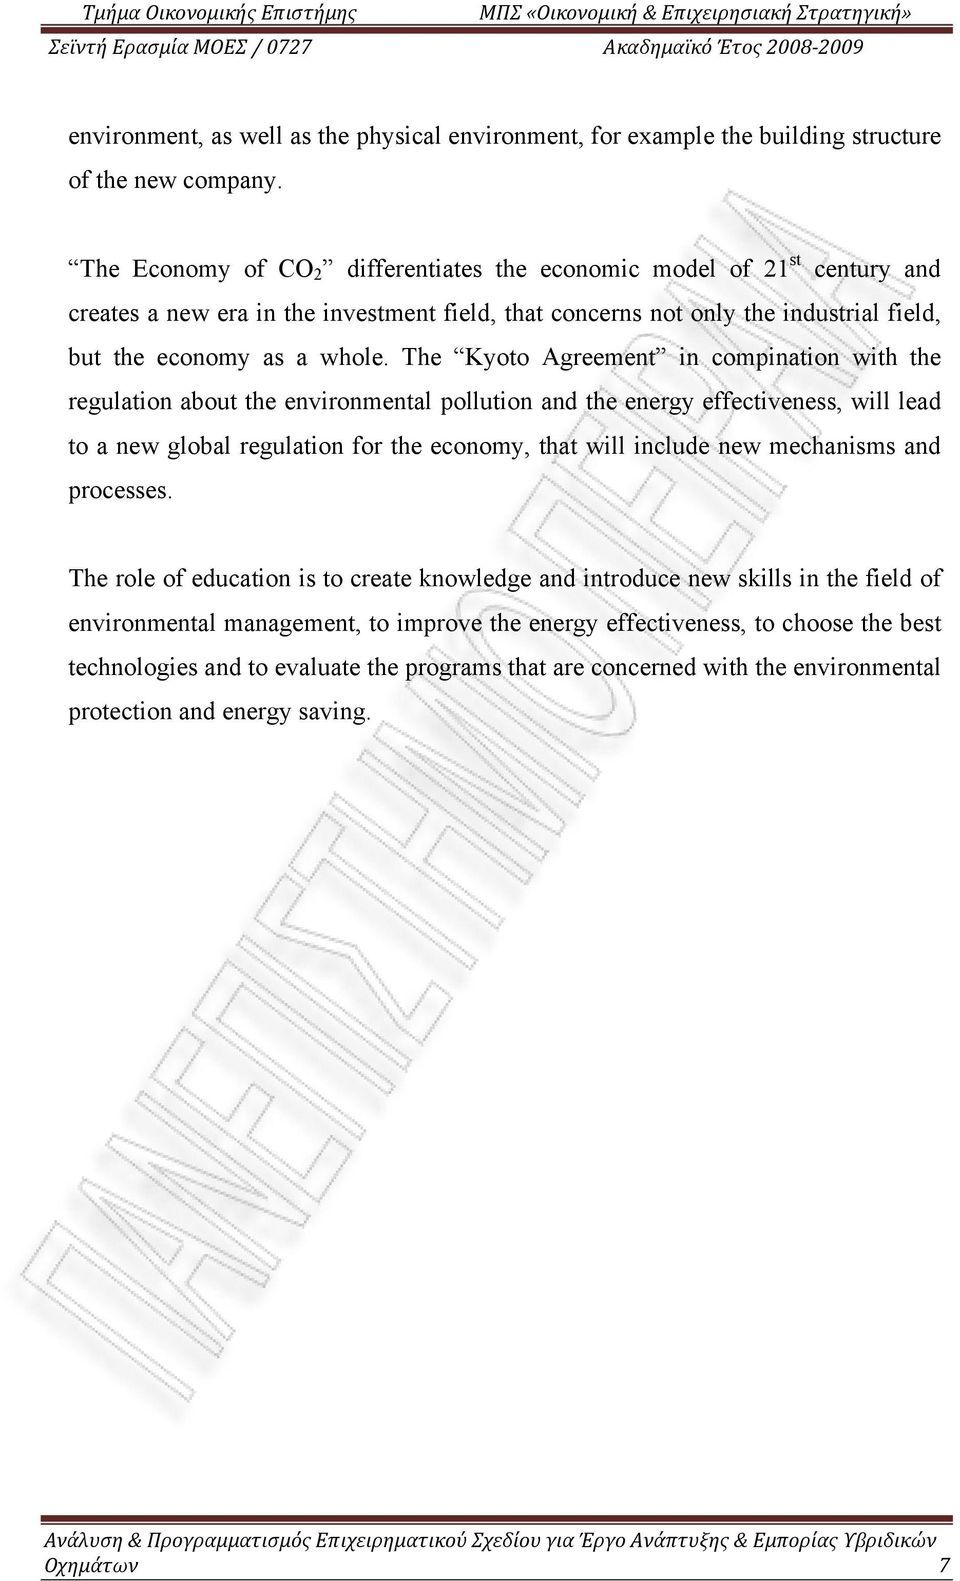 The Kyoto Agreement in compination with the regulation about the environmental pollution and the energy effectiveness, will lead to a new global regulation for the economy, that will include new